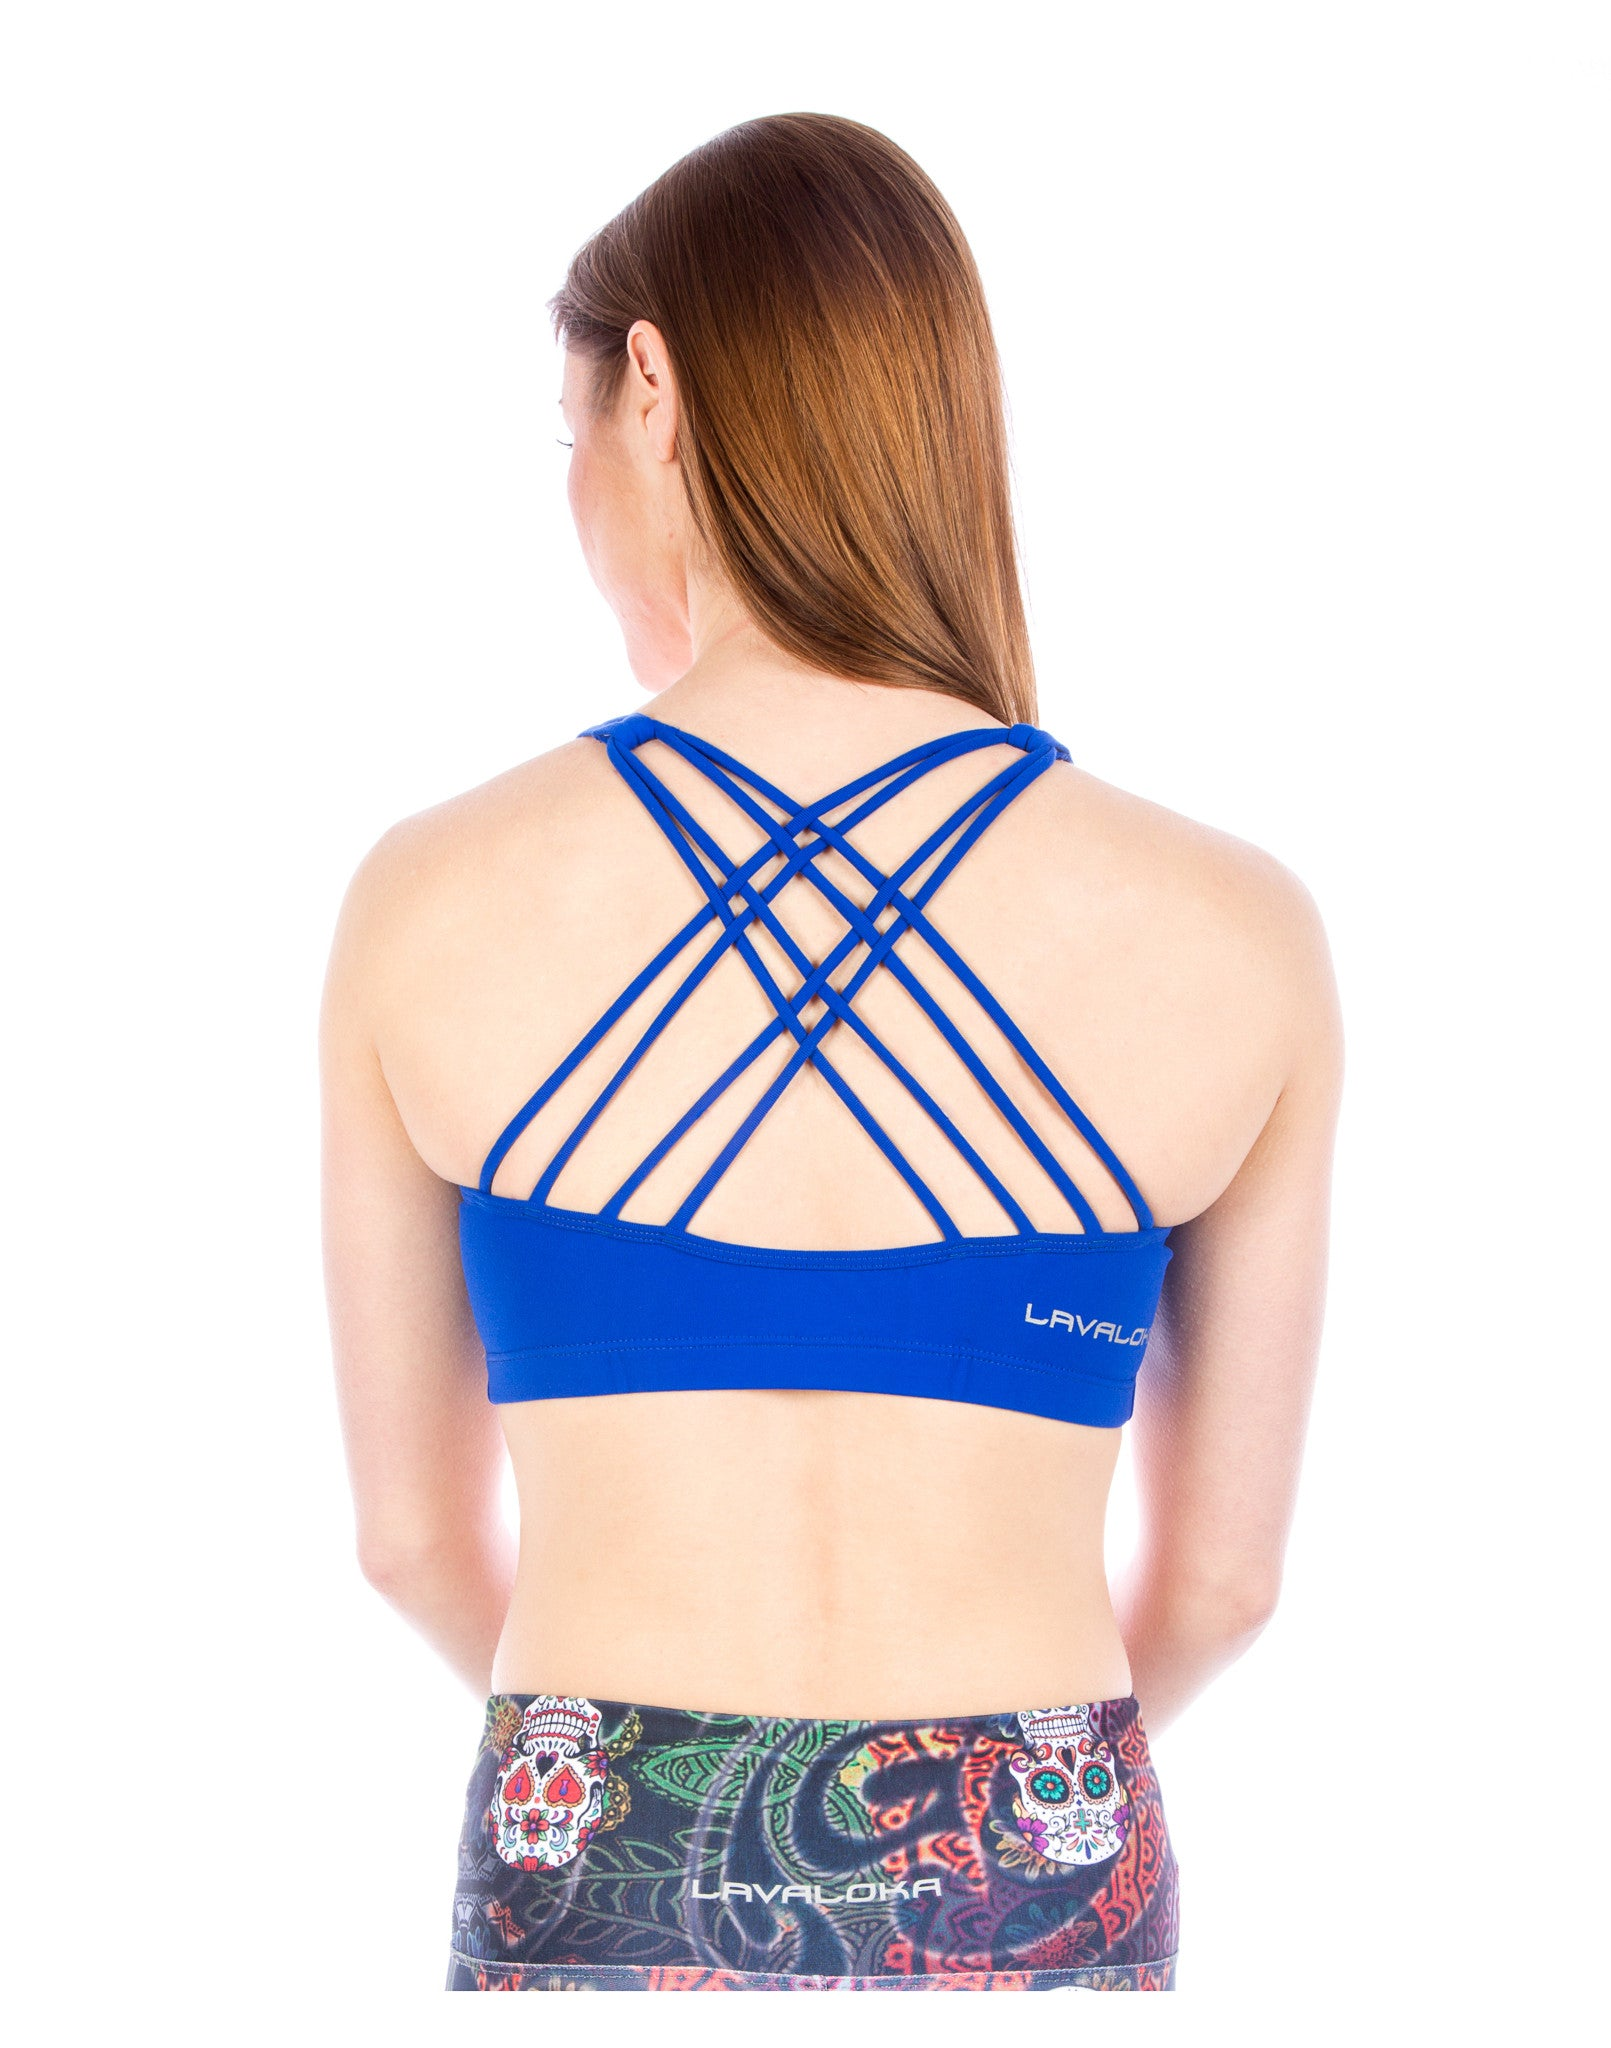 Sports Bra - Samantha Sports Bra LavaLoka - Blue - buy it in every color